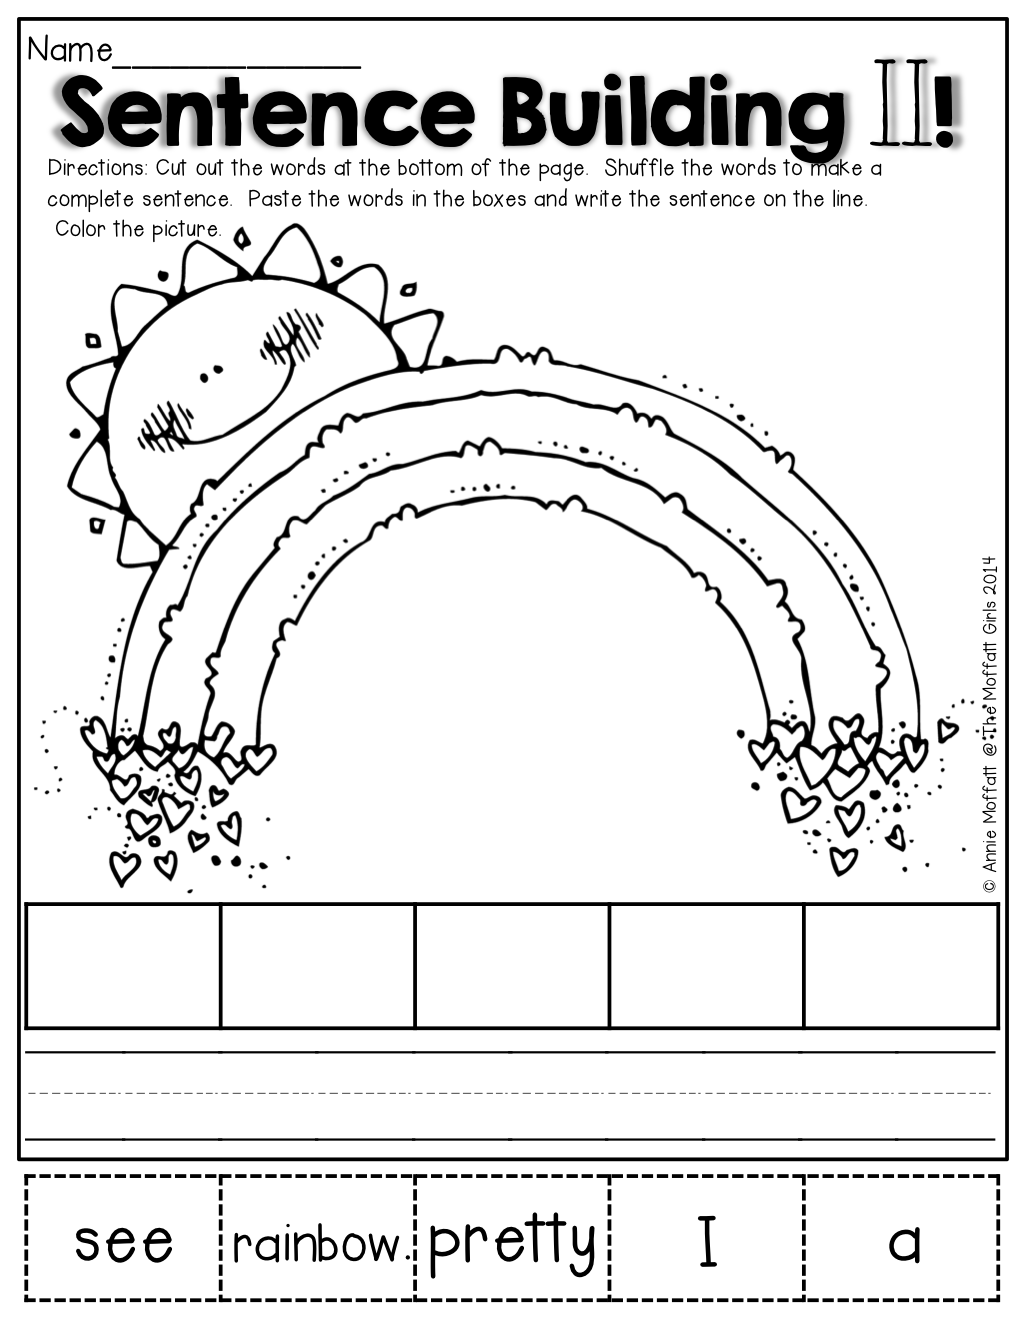 Free Worksheet Cut And Paste Sentence Worksheets top 25 ideas about form a sentence worksheets on pinterest pocket charts for kindergarten and simple sentences